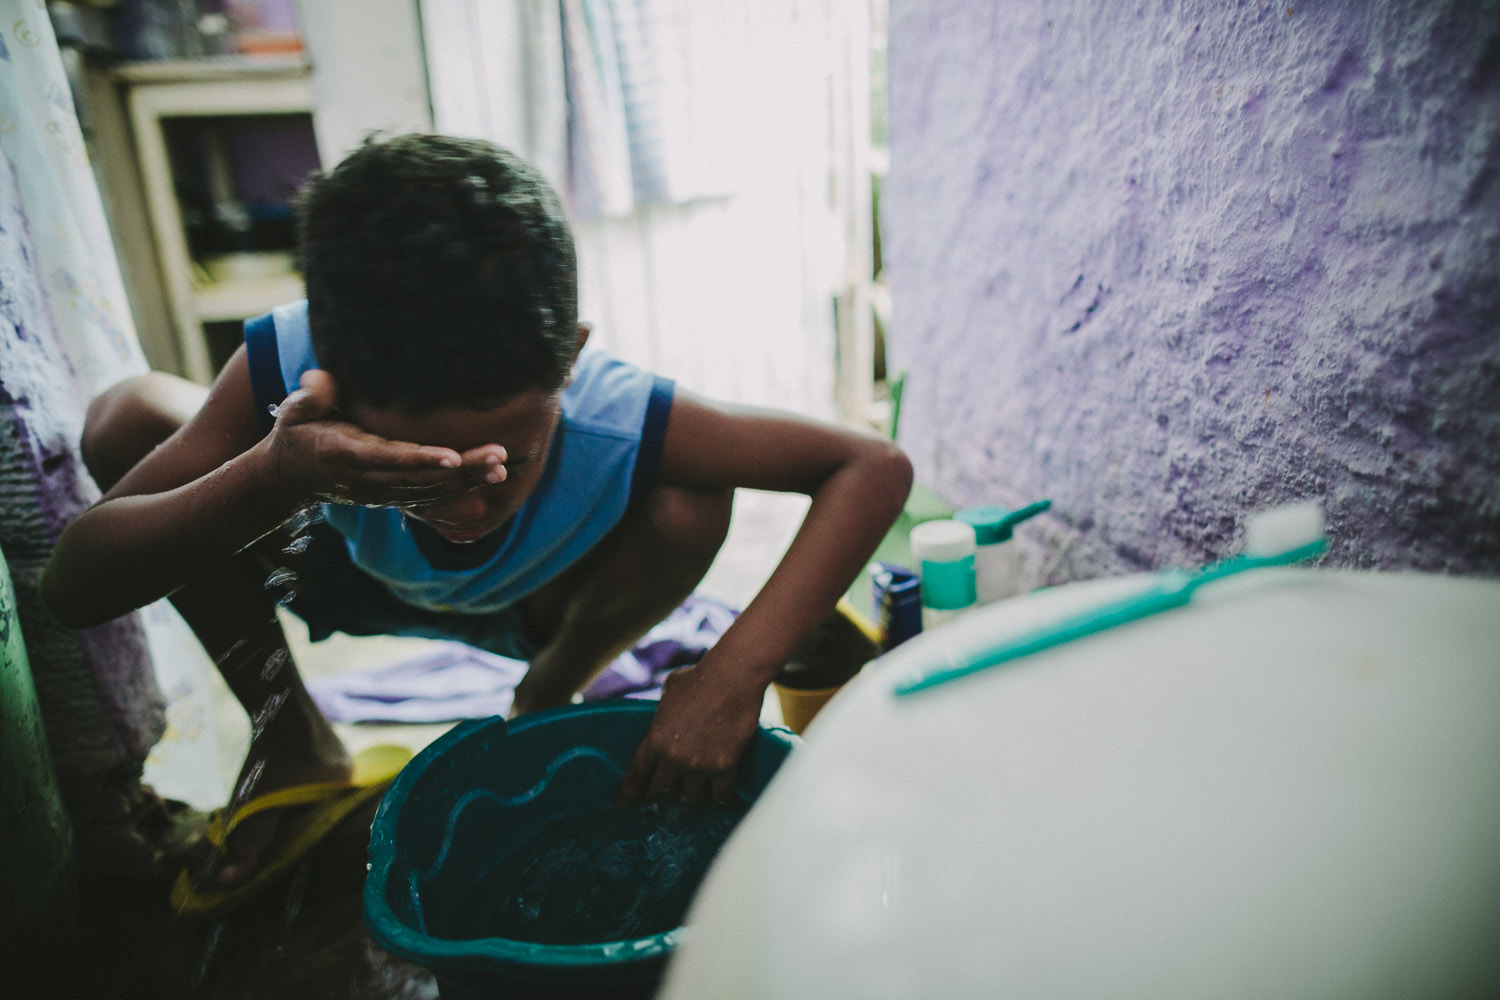 The space where Emidio washes his face in the morning is the same space where the family does all their bathroom, kitchen, and sleeping activities. Emidio's entire house (housing 4 people---soon to be 5) is perhaps no larger than 8 feet by 10 feet. This is Emidio's morning routine before heading to classes at the Compassion Center.